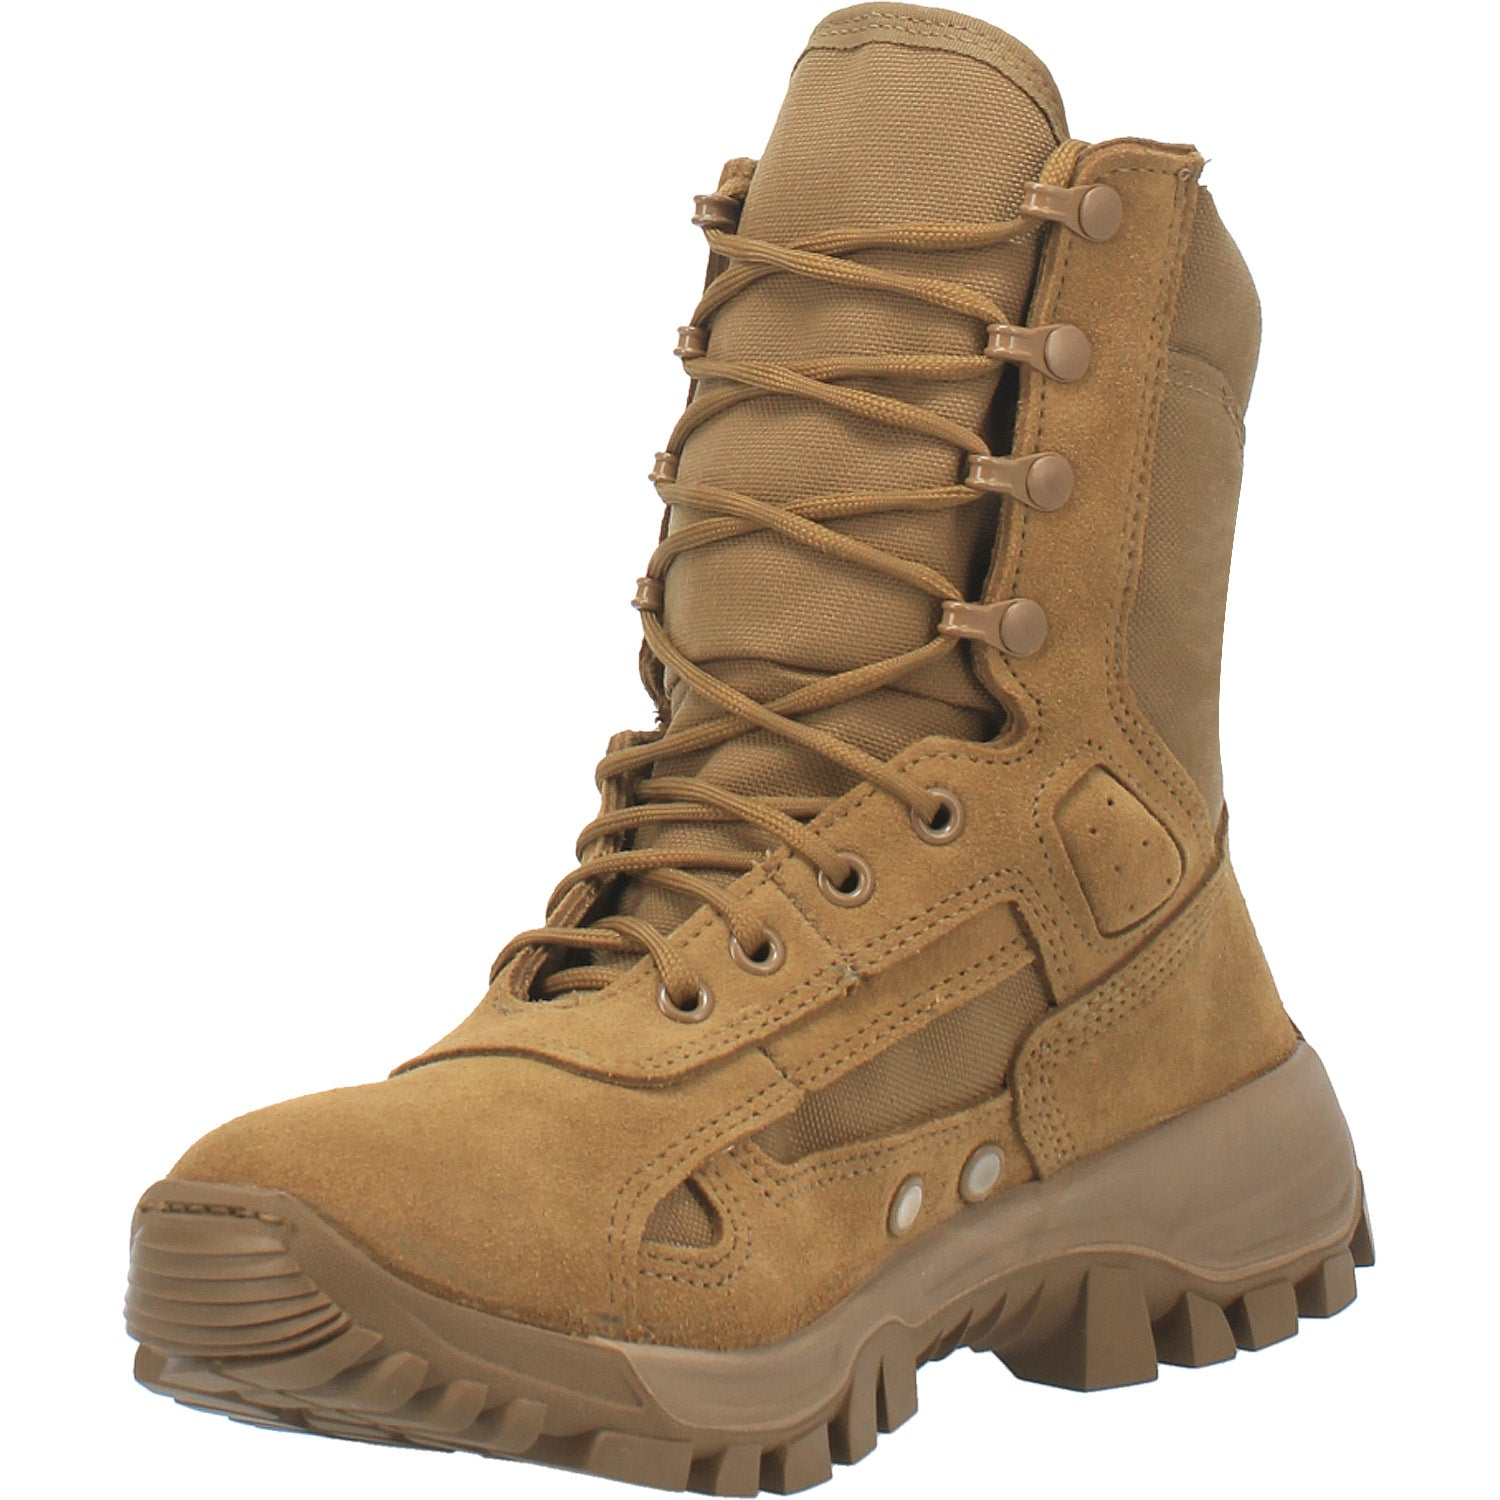 Terassault T1 Hot Weather Performance Combat Boot 14940747268138